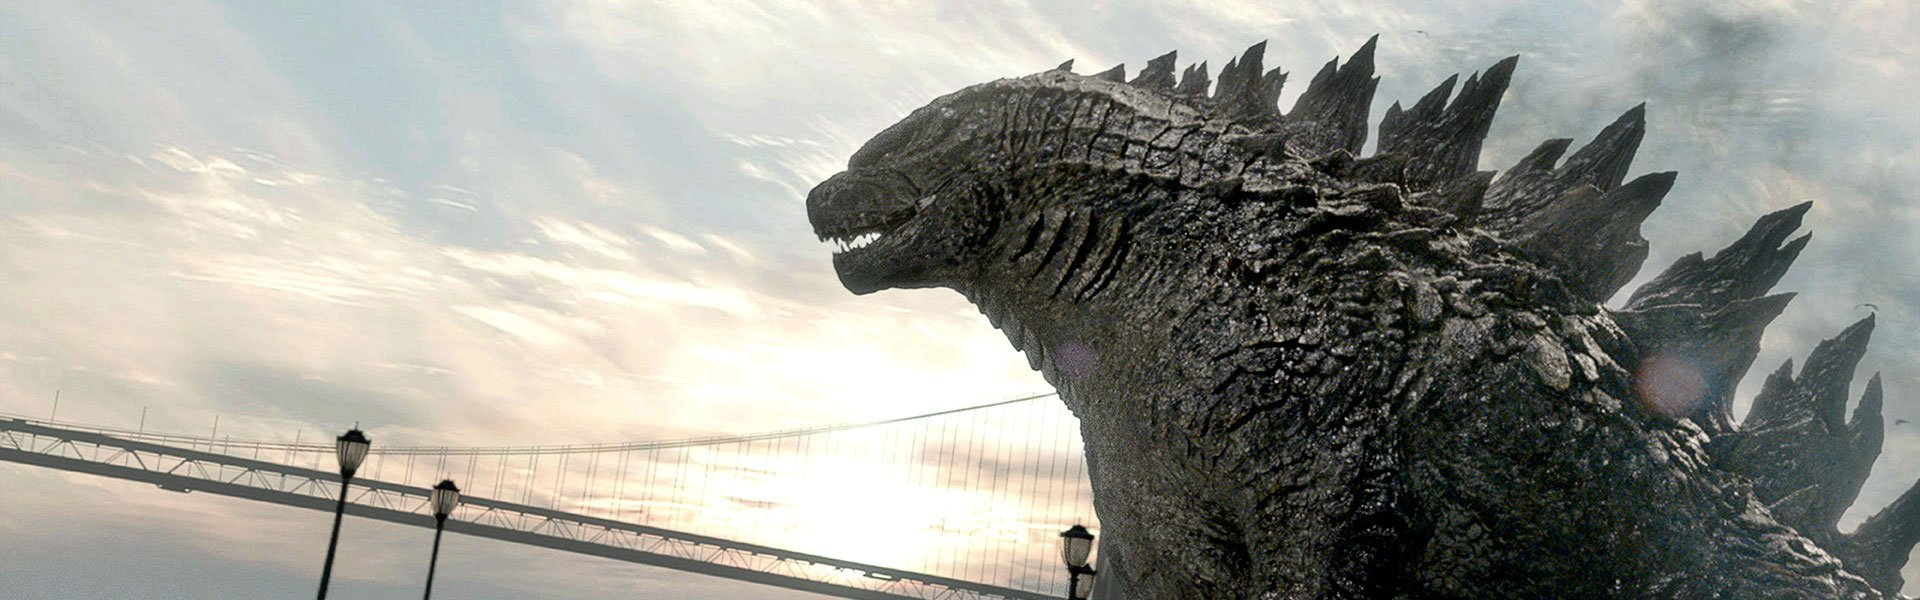 REVIEW: Godzilla (2014) Blu-ray Features The Most Aggressive Sound Ever